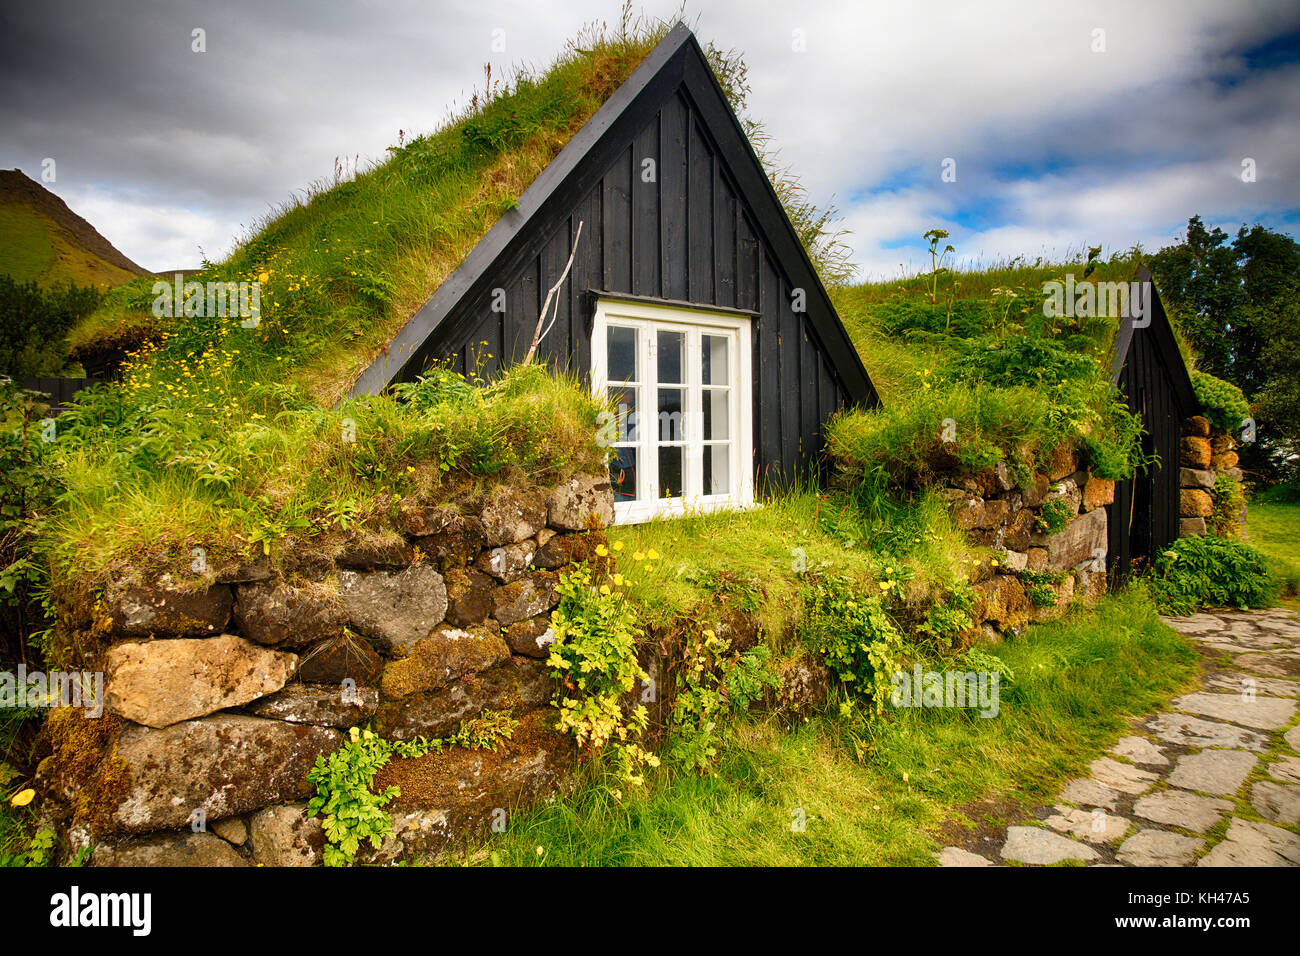 IcelandicTurfhouse During Summer, Skogar Folks Museum, Iceland - Stock Image